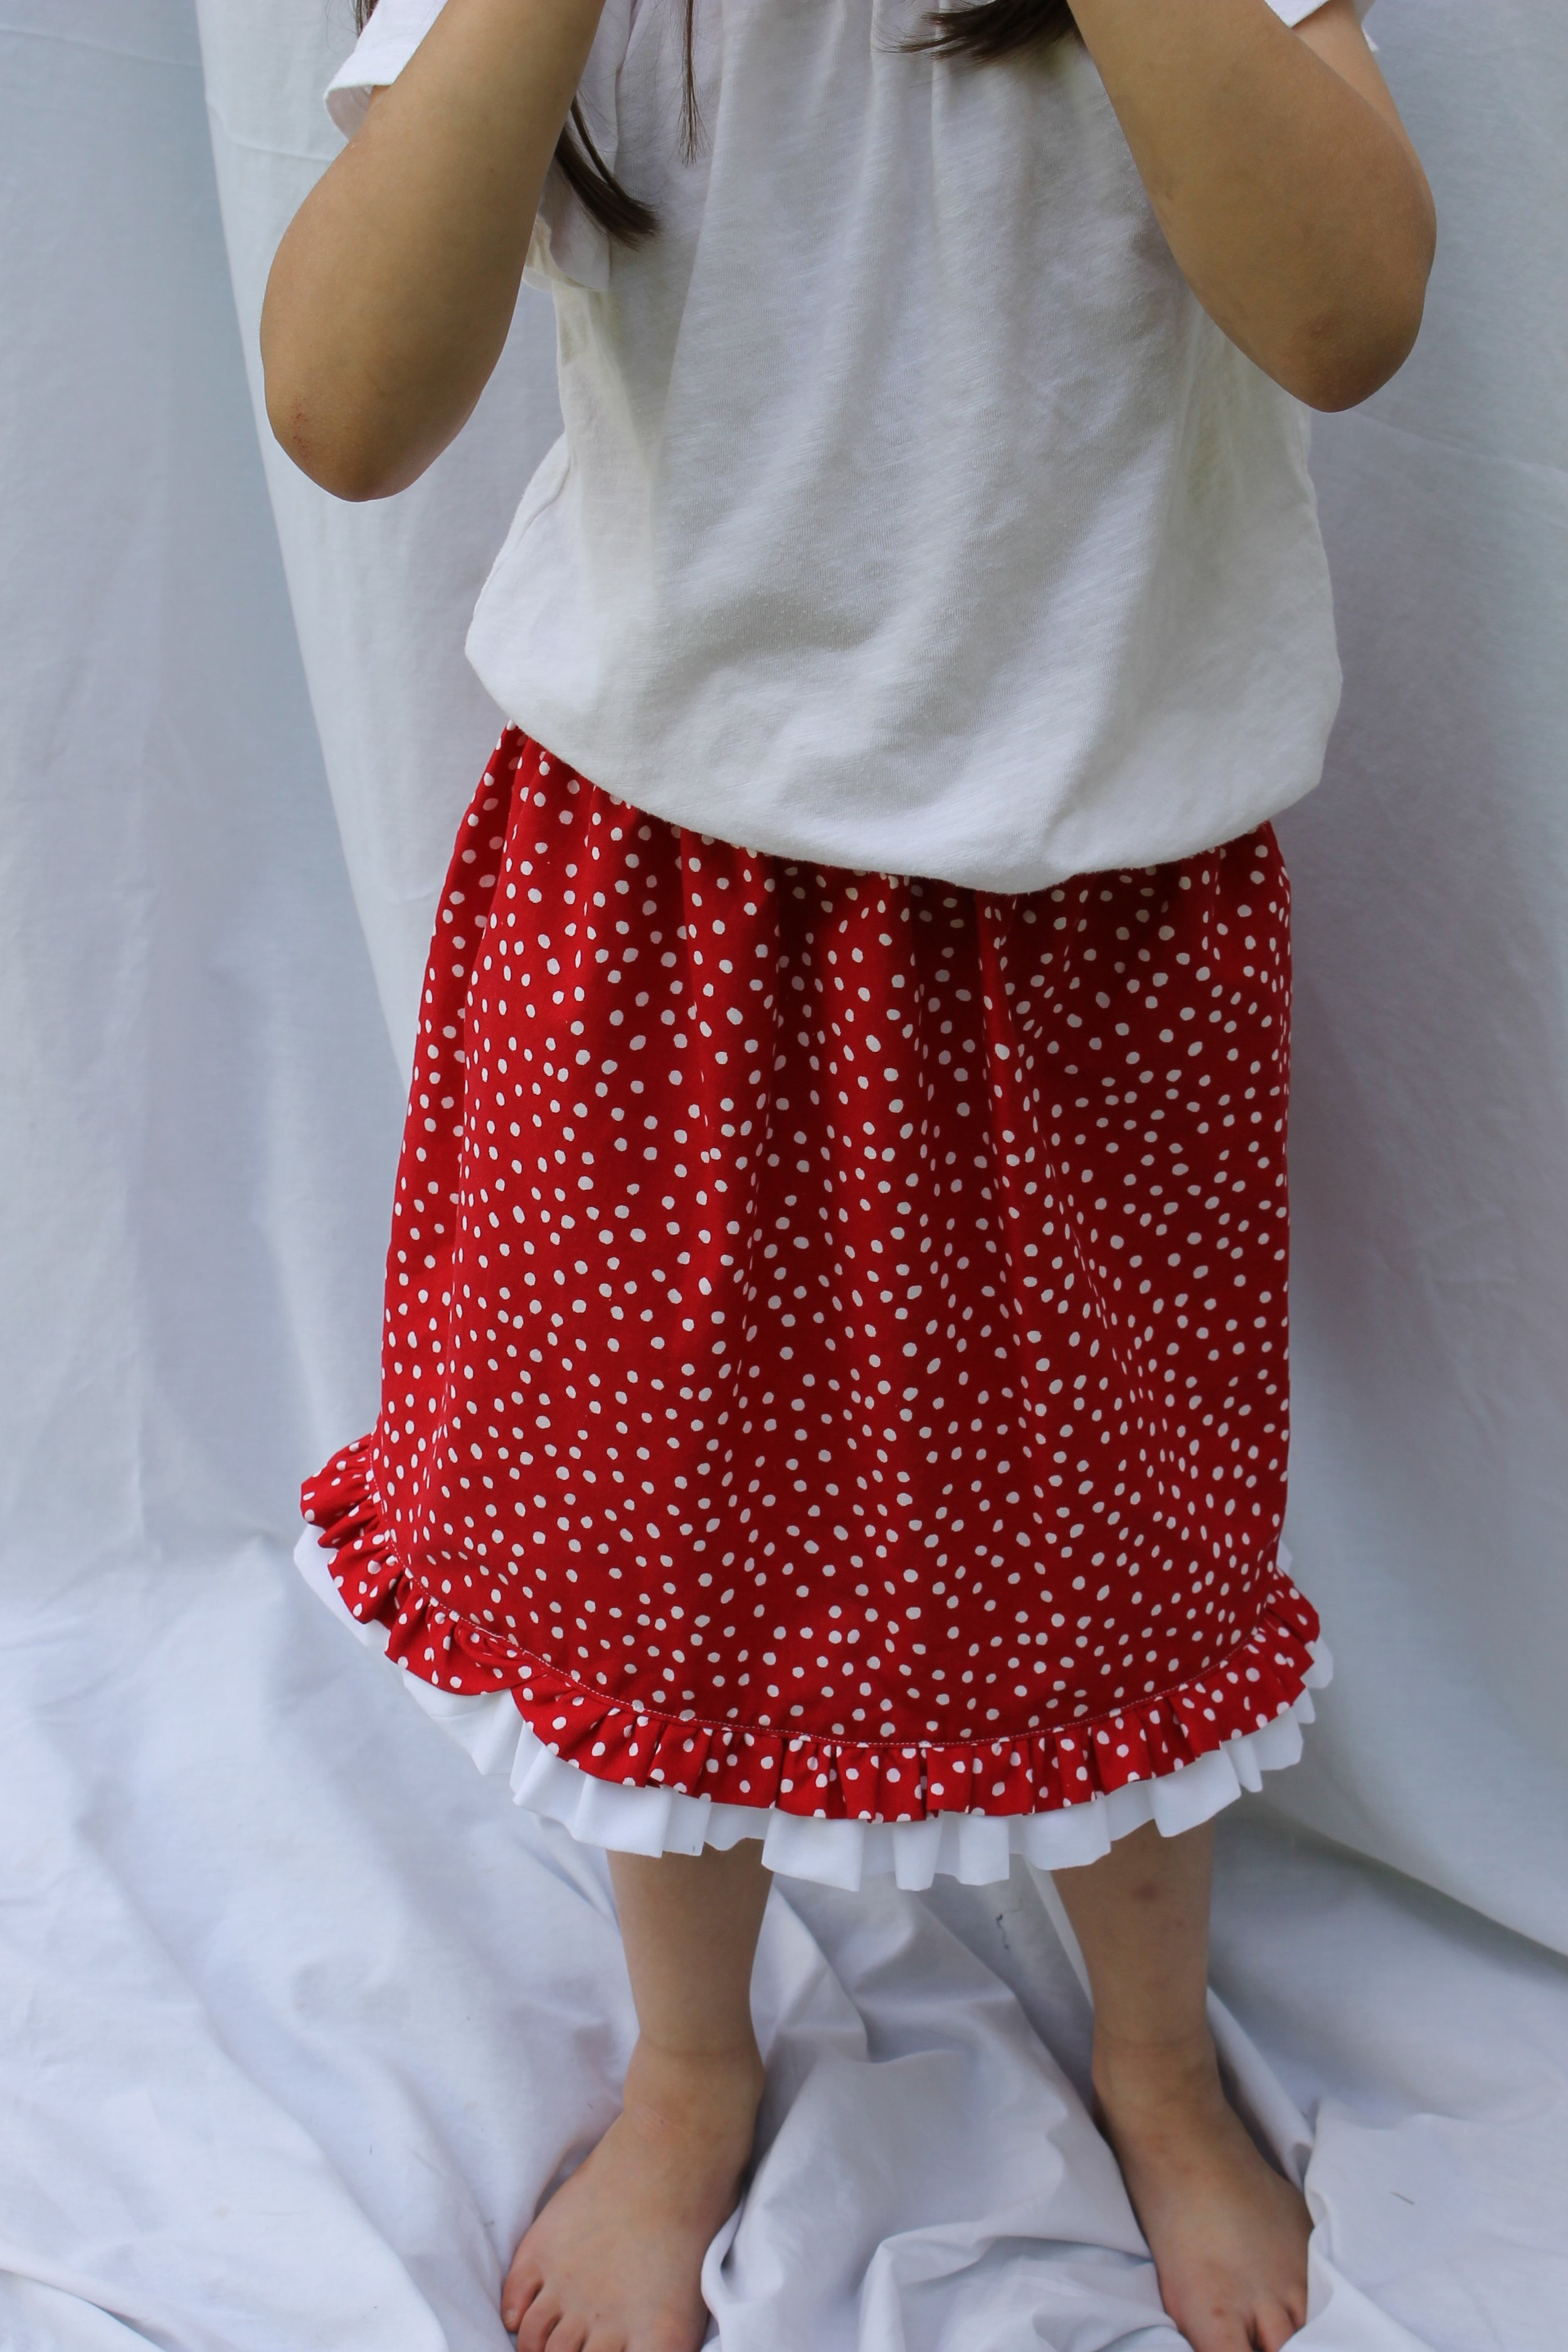 Red and white polka dots. So cute!!